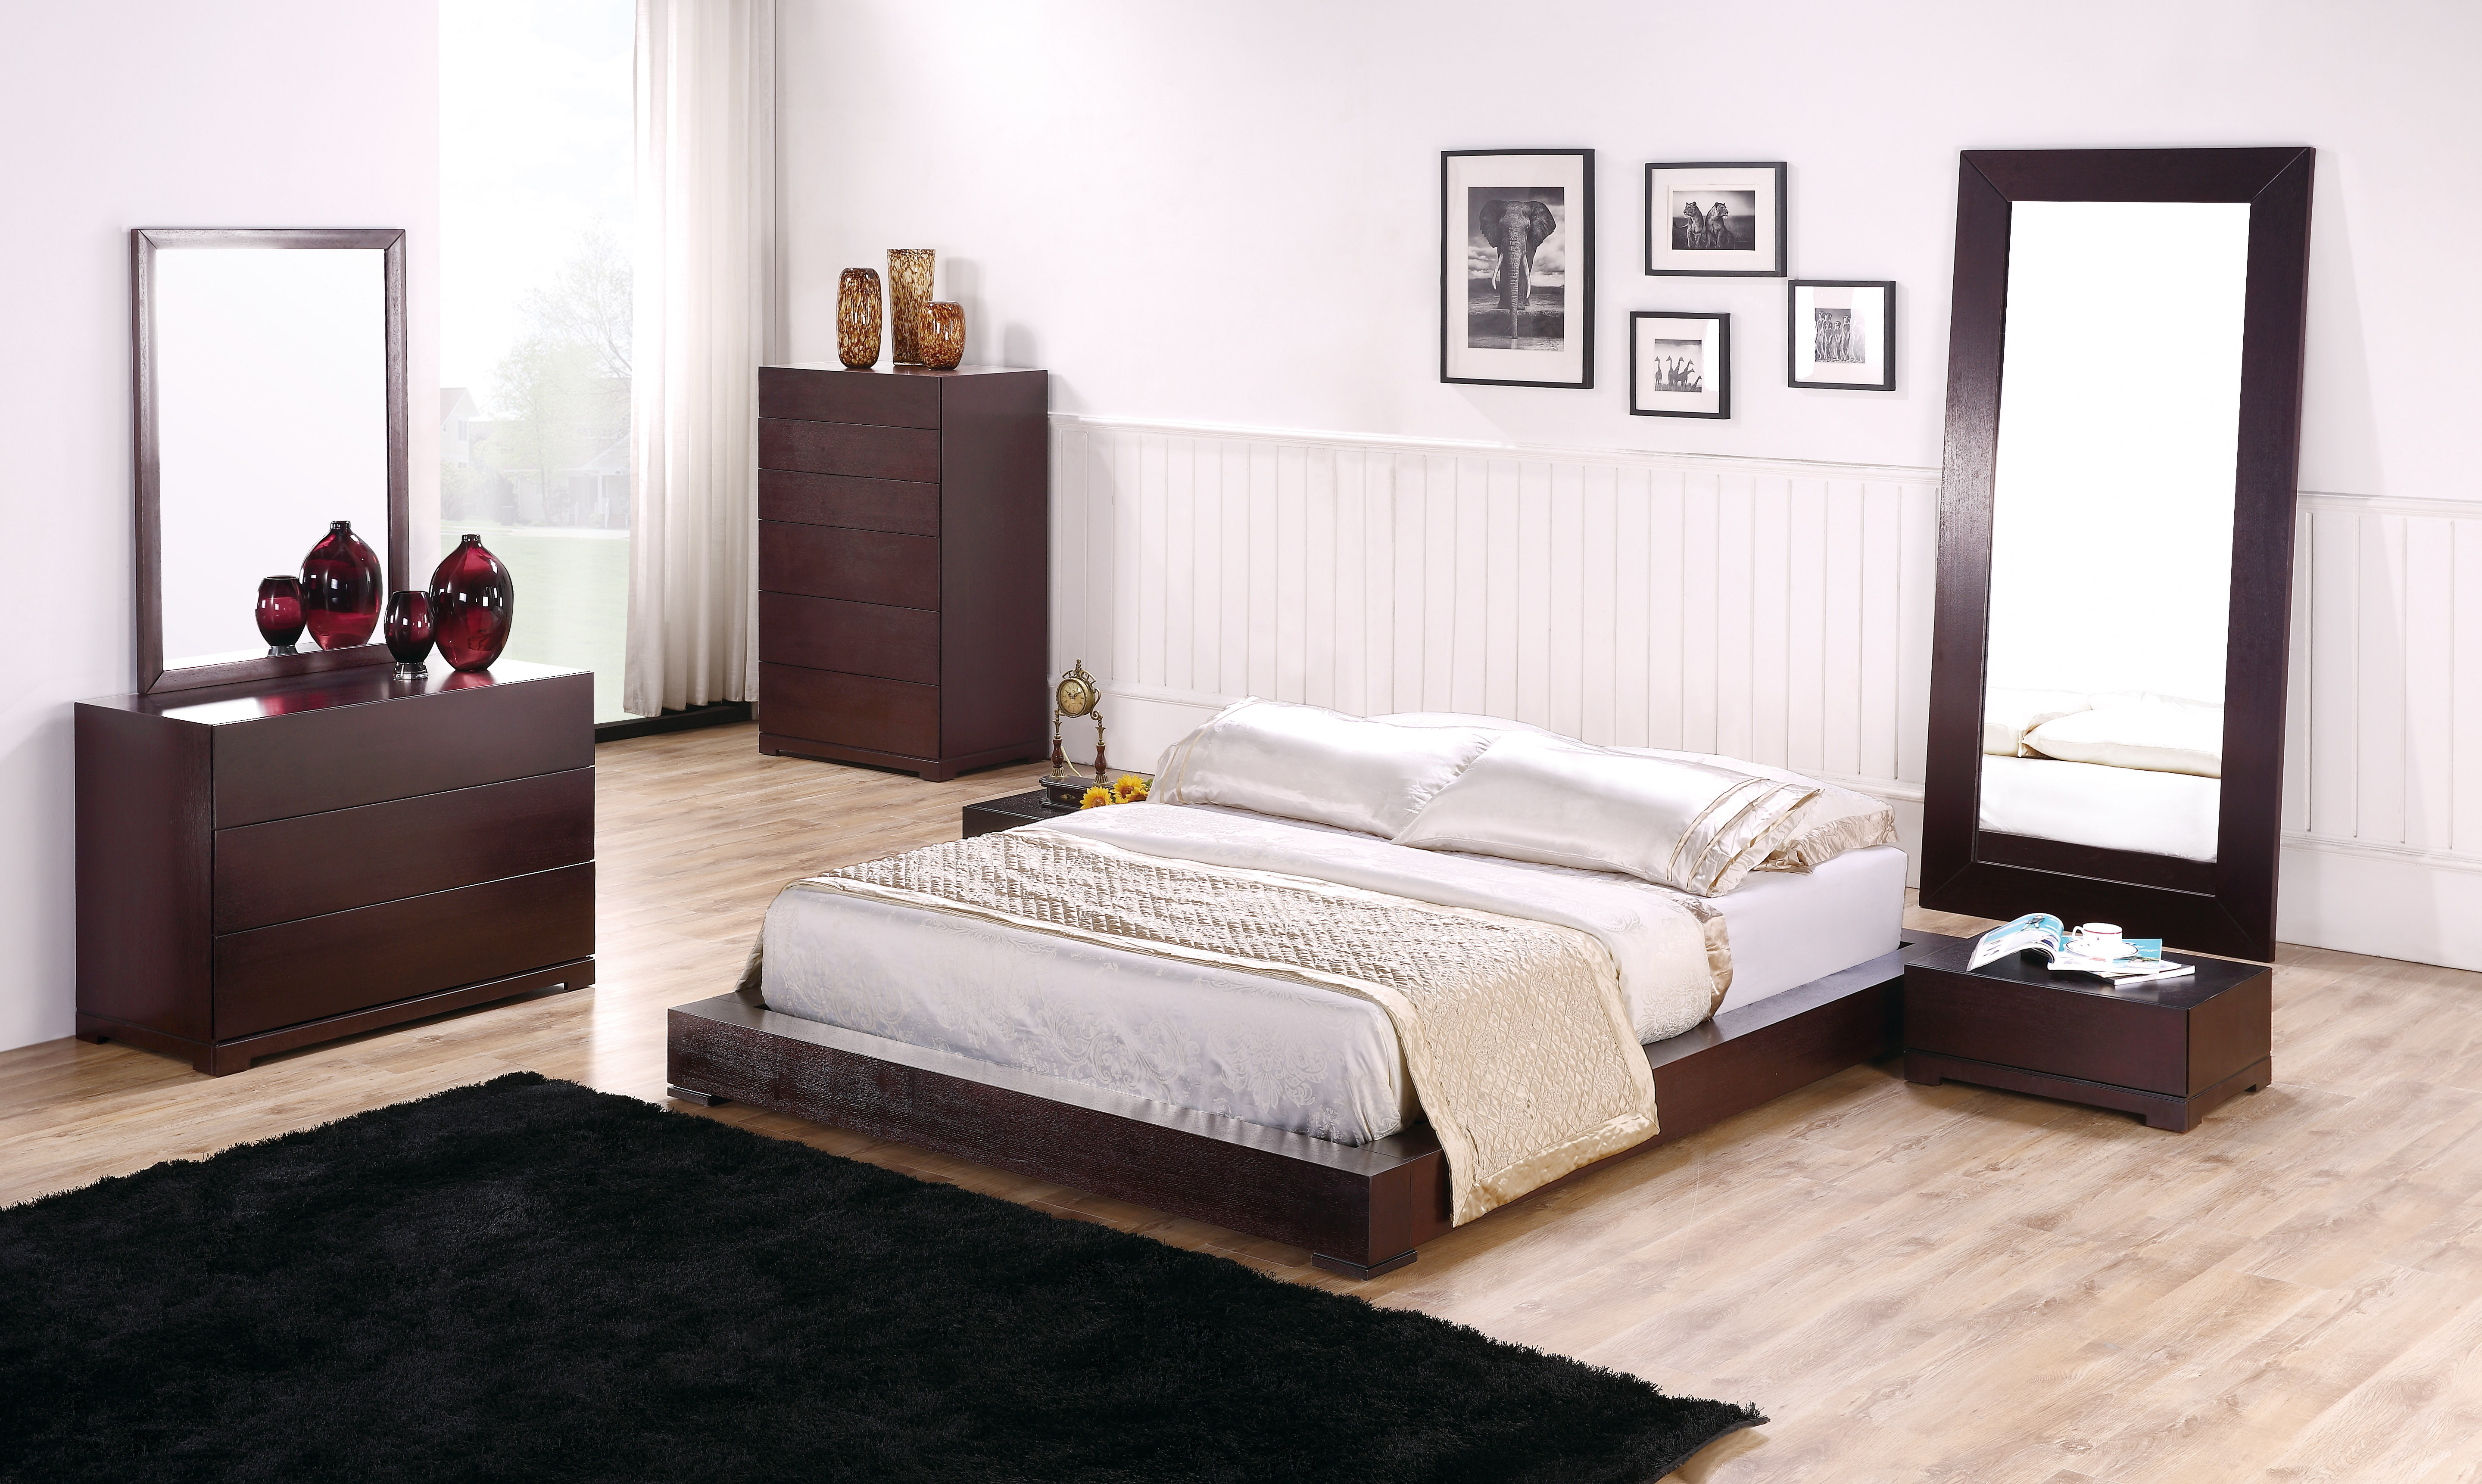 Exclusive Wood Designer Bedroom Sets Fort Wayne Indiana Bh Zen